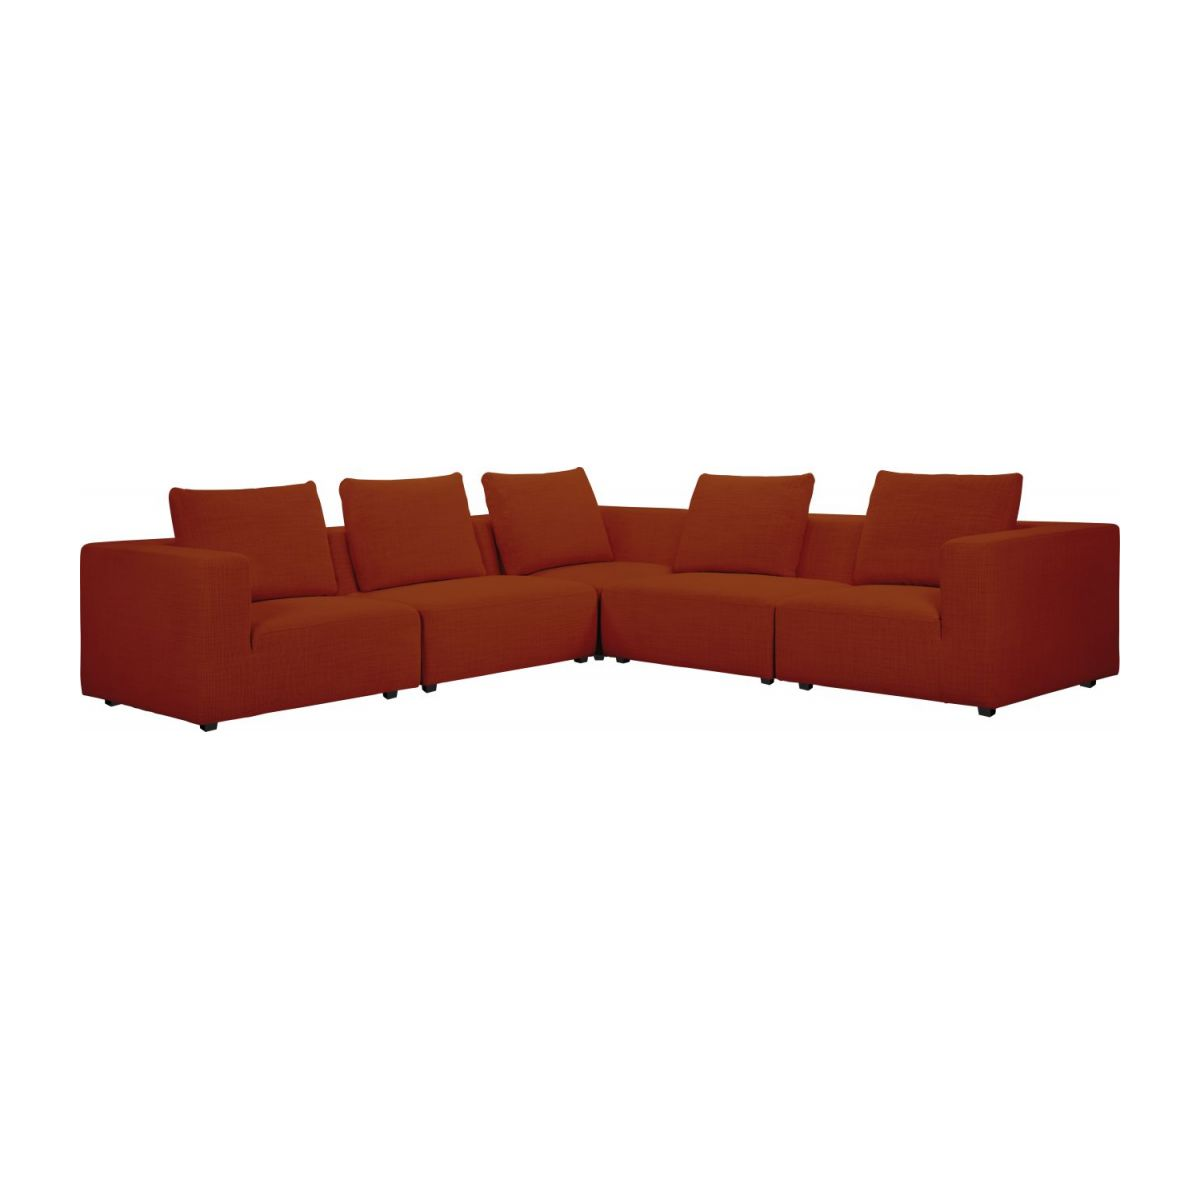 Canapé d'angle 5 places en tissu Fasoli warm red rock n°1